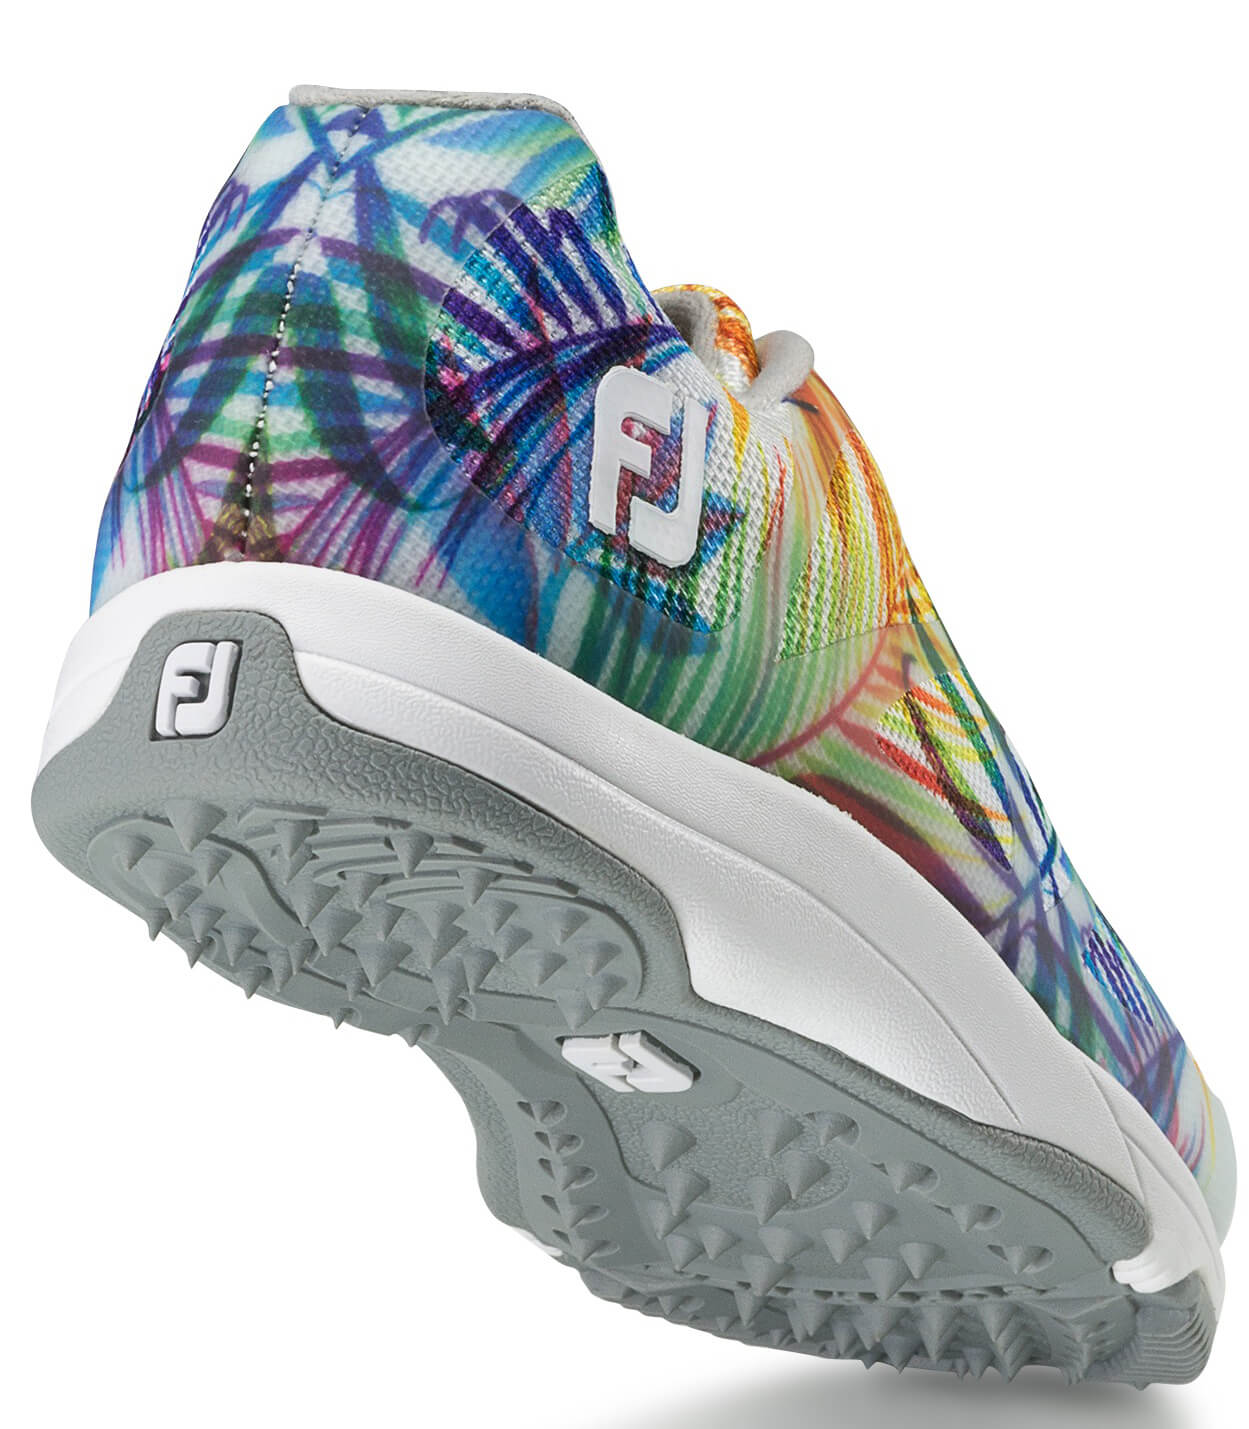 FootJoy-Women-039-s-Leisure-Golf-Shoes-Spikeless-Ladies-New-Choose-Color-amp-Size thumbnail 13